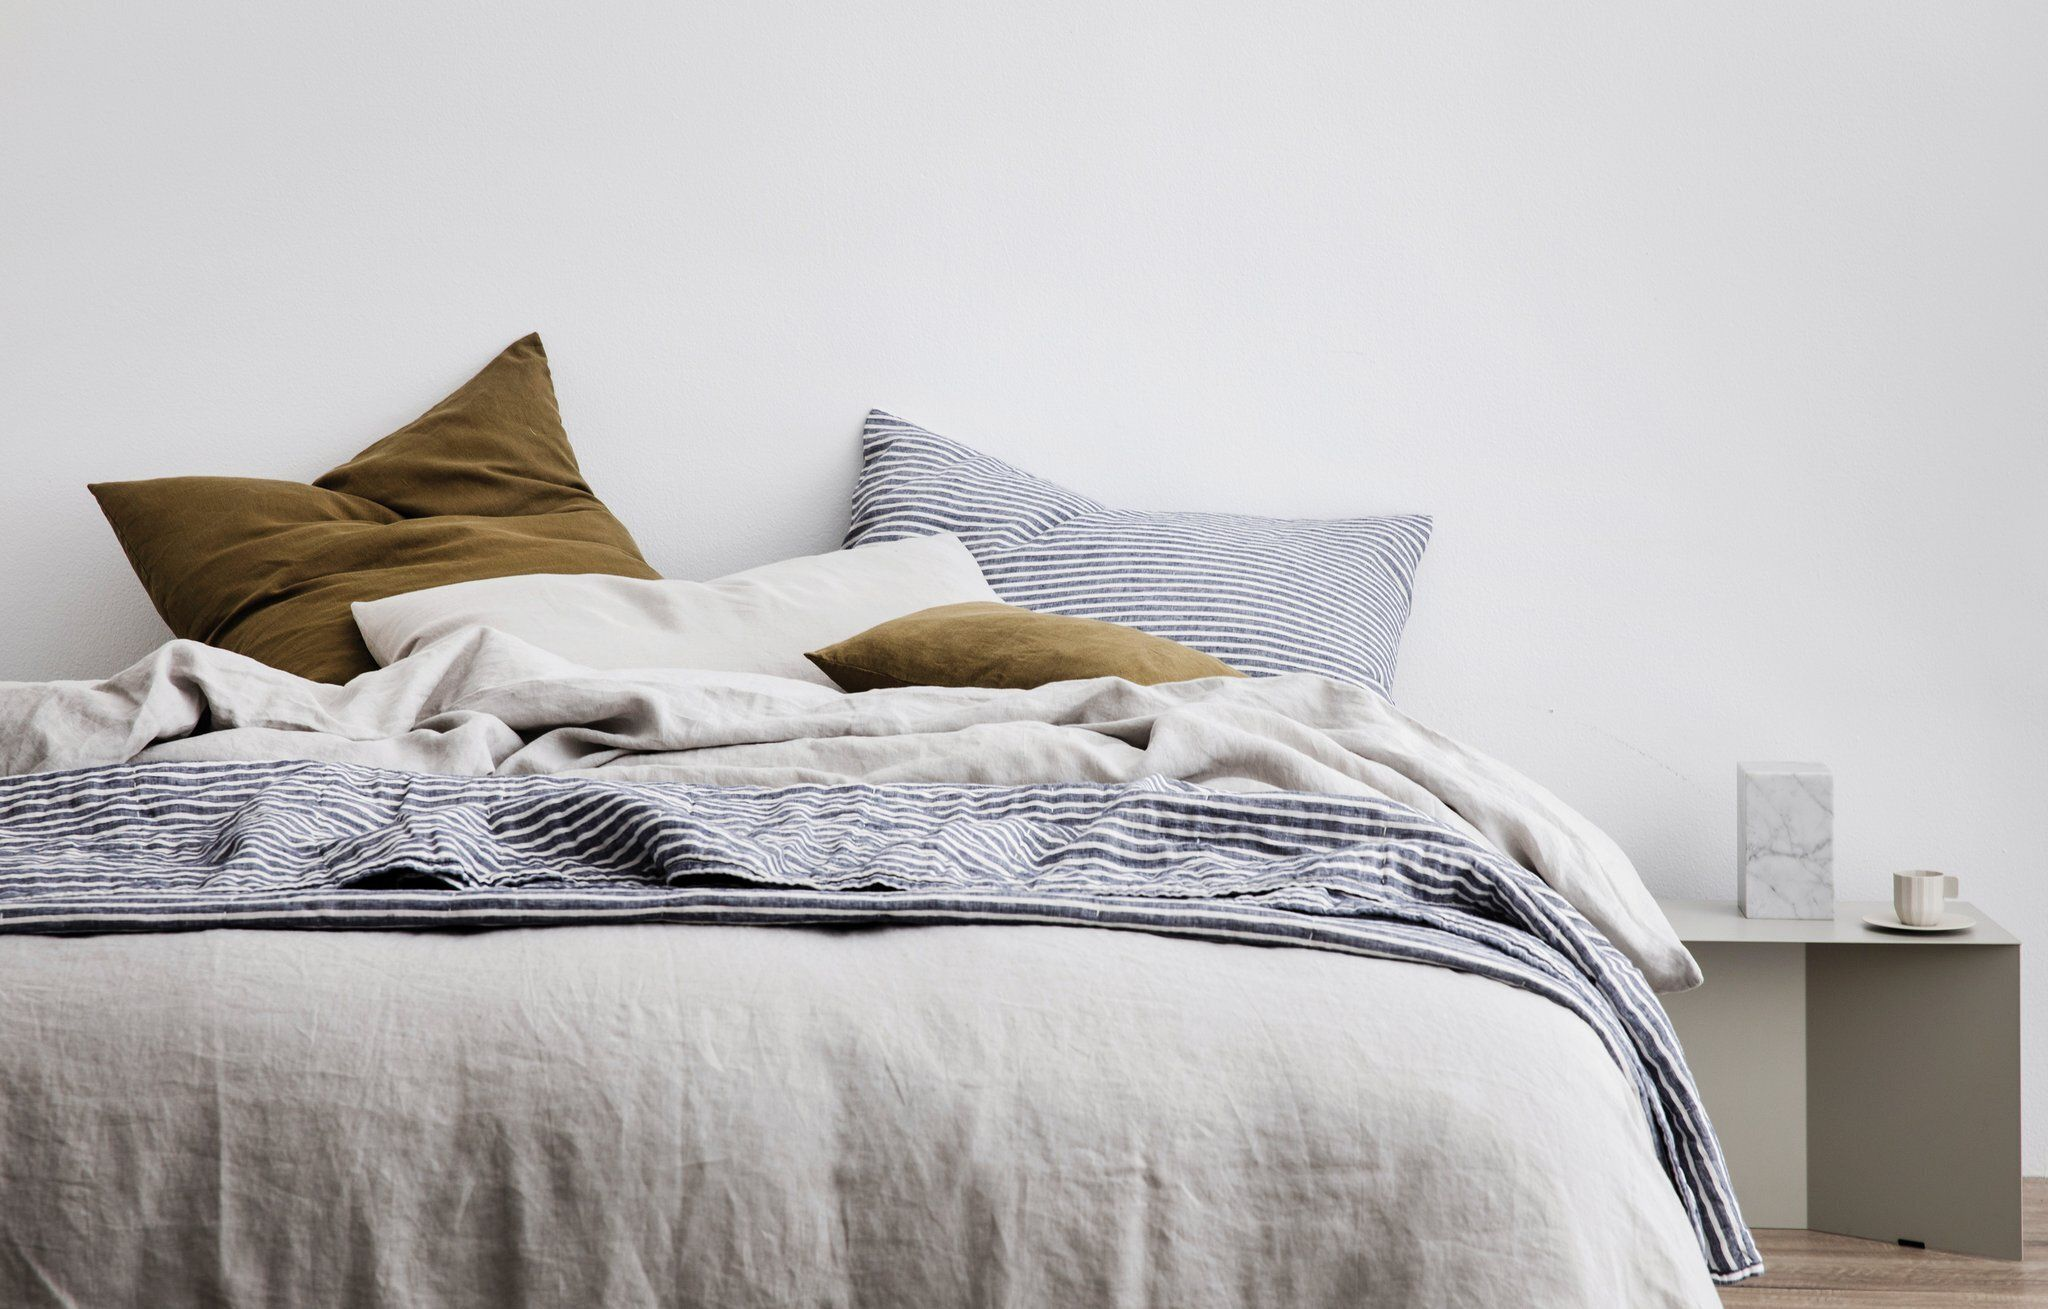 Laid Back Bed Linen Ideas To Inspire A Bedroom Makeover Huffpost Australia Style